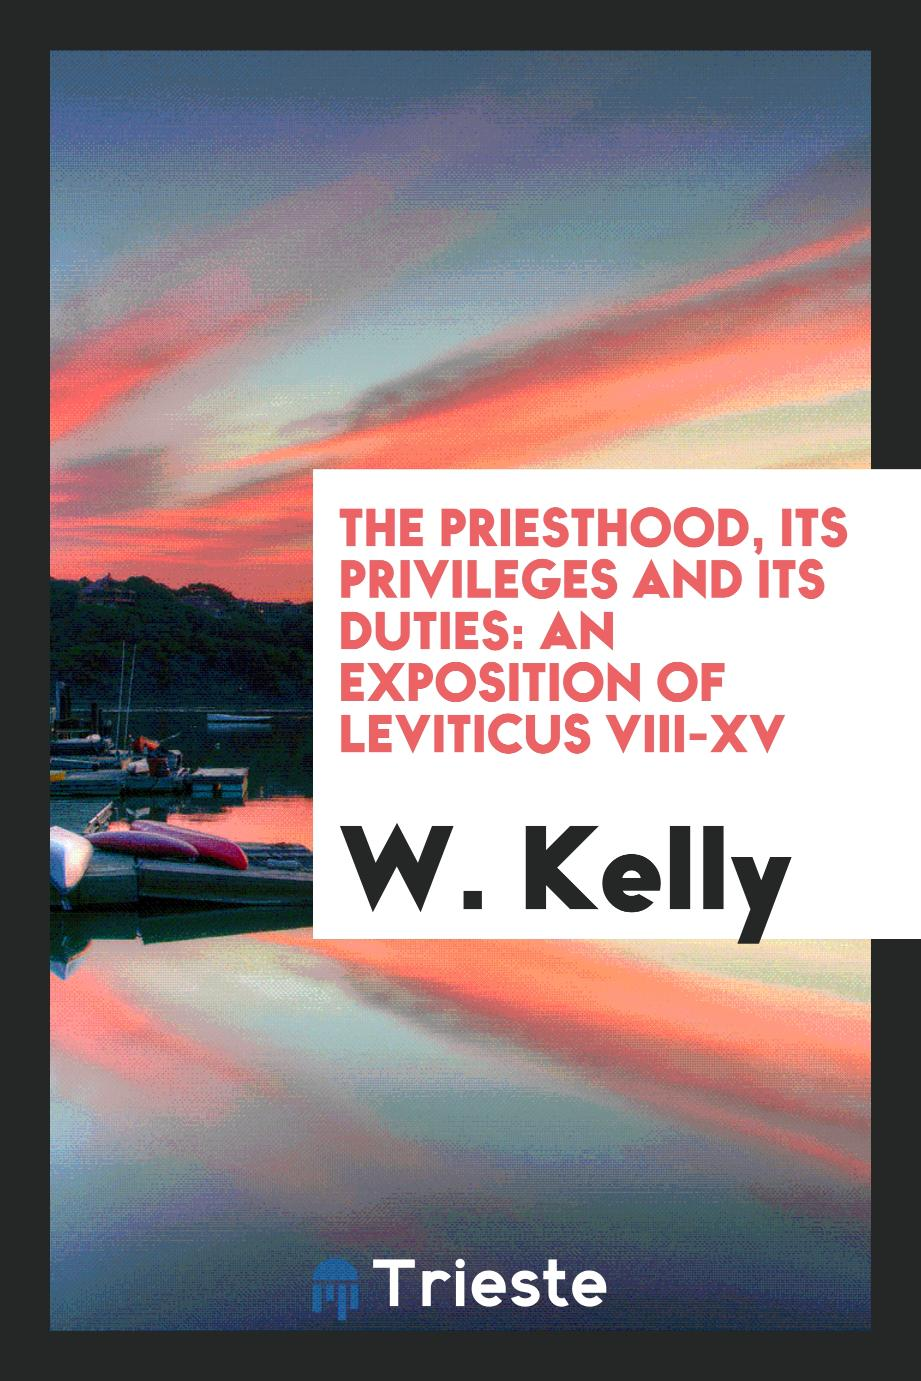 The Priesthood, Its Privileges and Its Duties: An Exposition of Leviticus VIII-XV